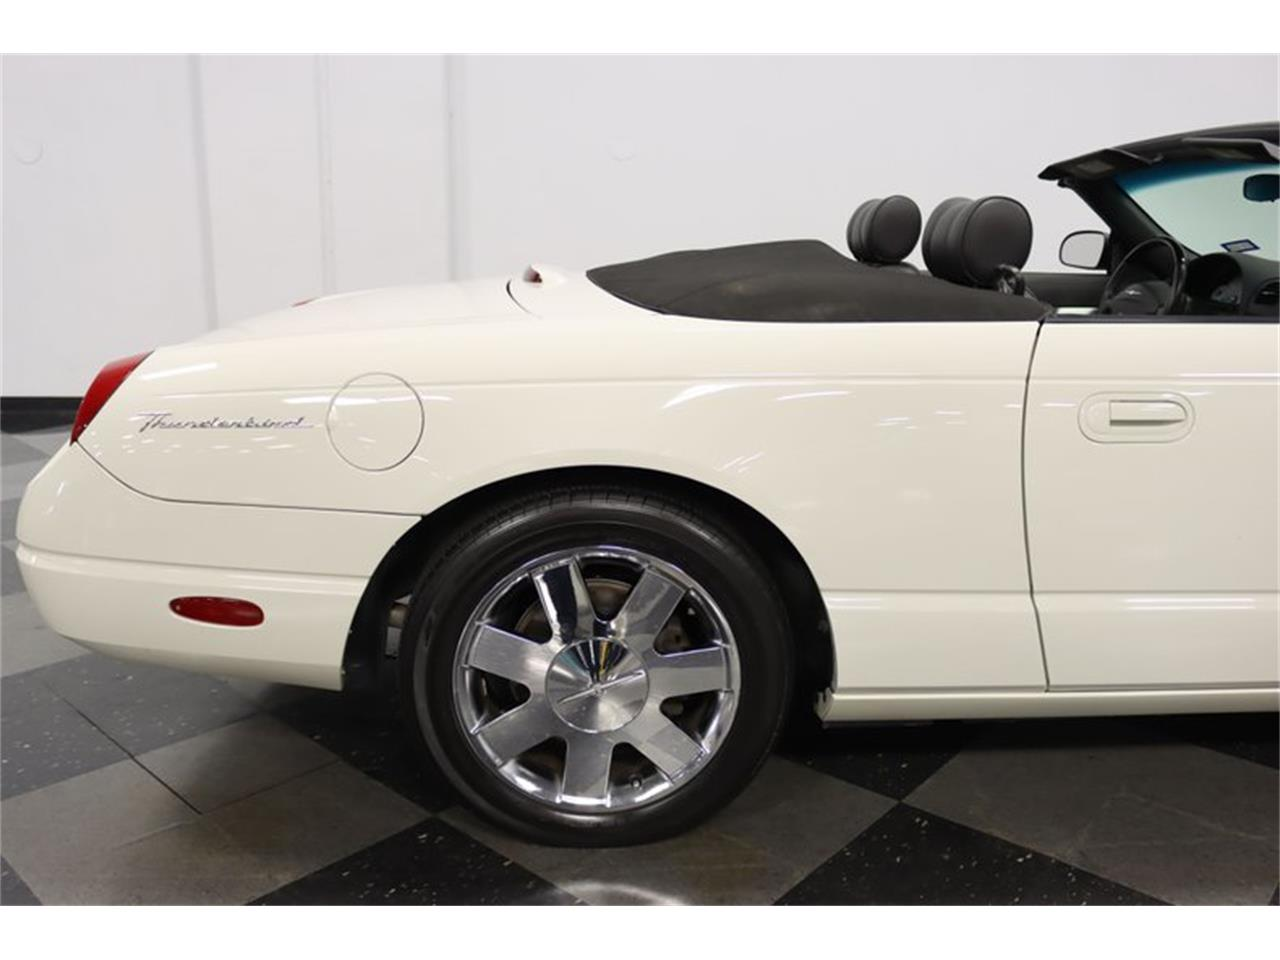 2002 Ford Thunderbird (CC-1385726) for sale in Ft Worth, Texas